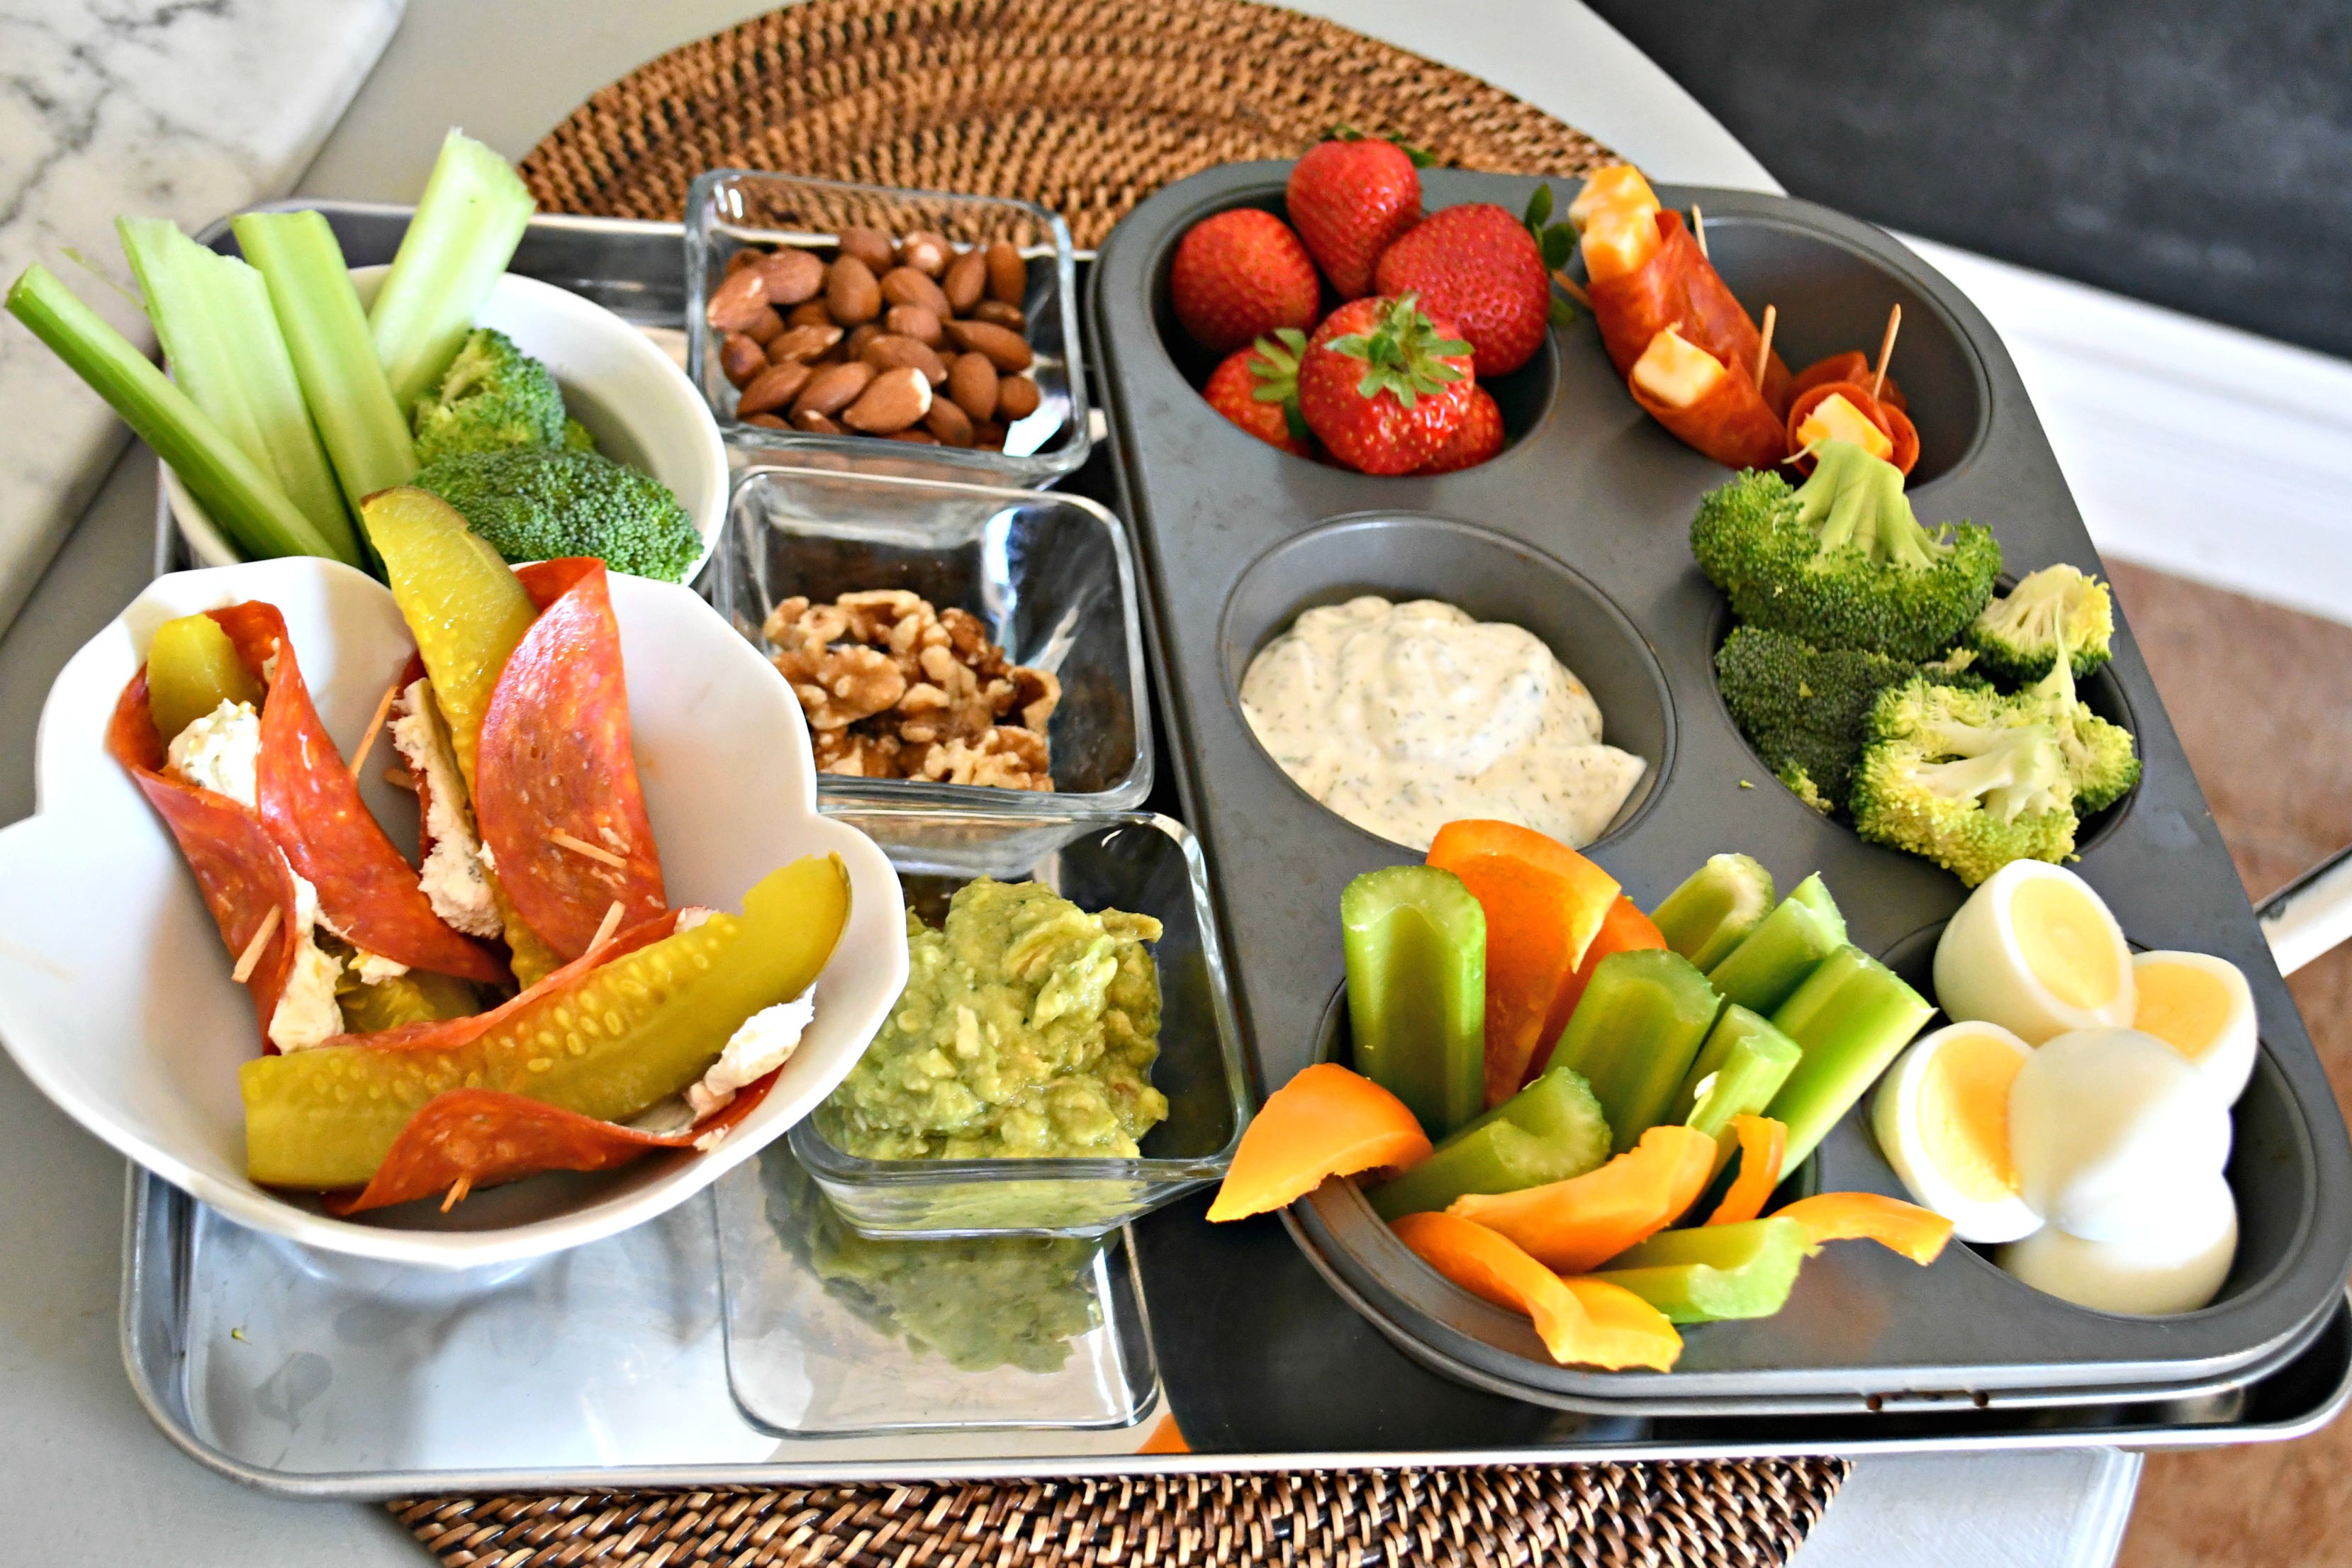 a tray filled with keto finger foods like fruits, veggies, meat, and cheese